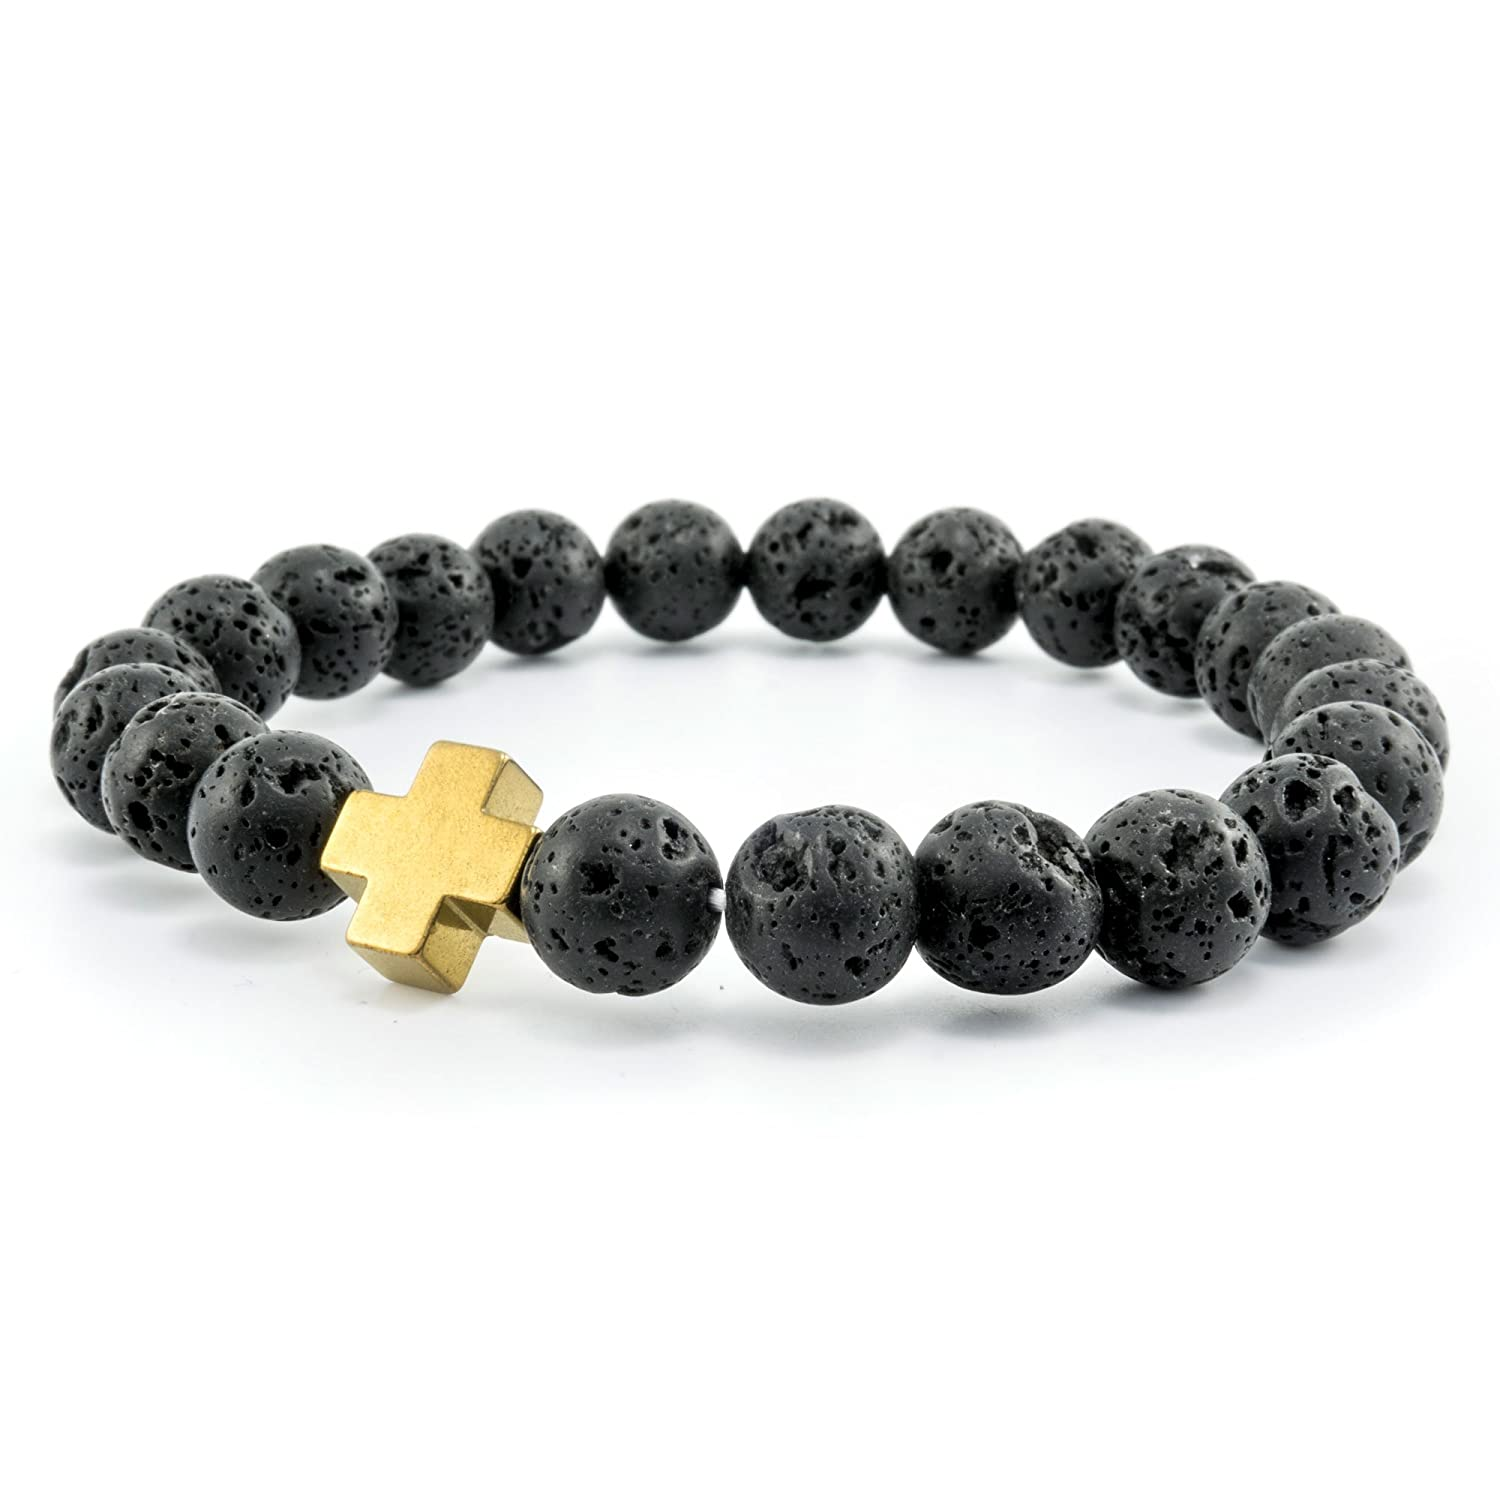 Women's Men's Inspirational Genuine Black Lava Stone Bead Stretch Bracelet with Alloy Gold Color Cross - 7.5 inches - HS-LVCB02-GD Heavensentgifts